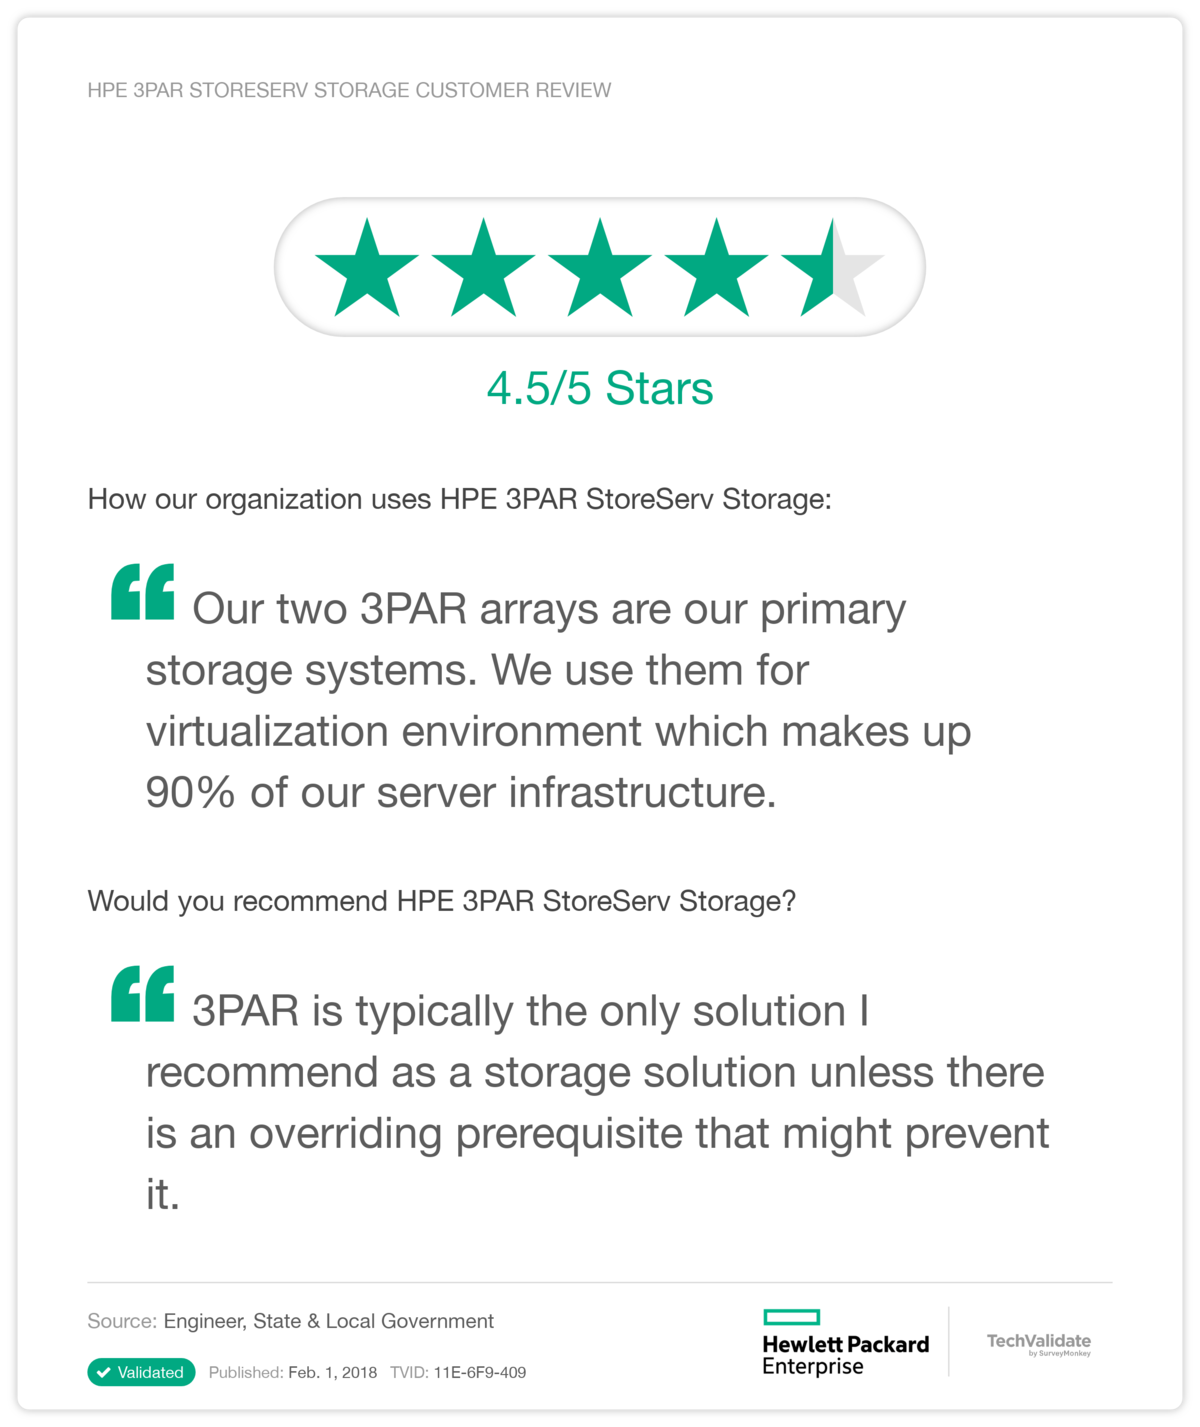 HPE 3PAR StoreServ Storage Customer Review